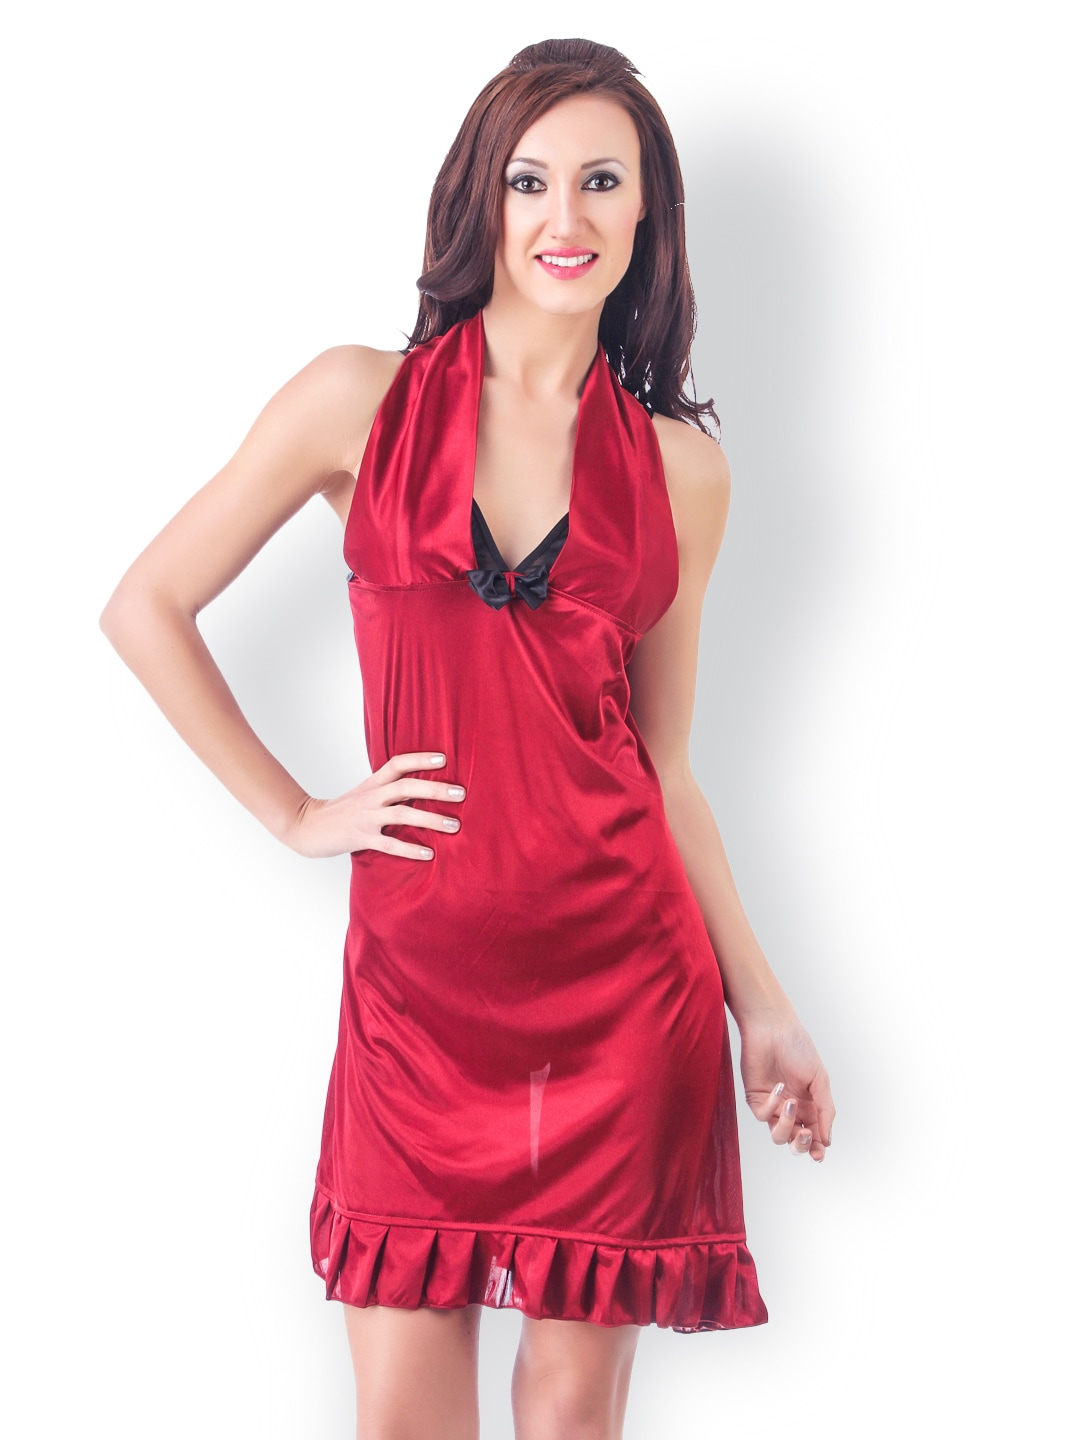 740a904736 Women Sleepwear Price List in India 29 March 2019